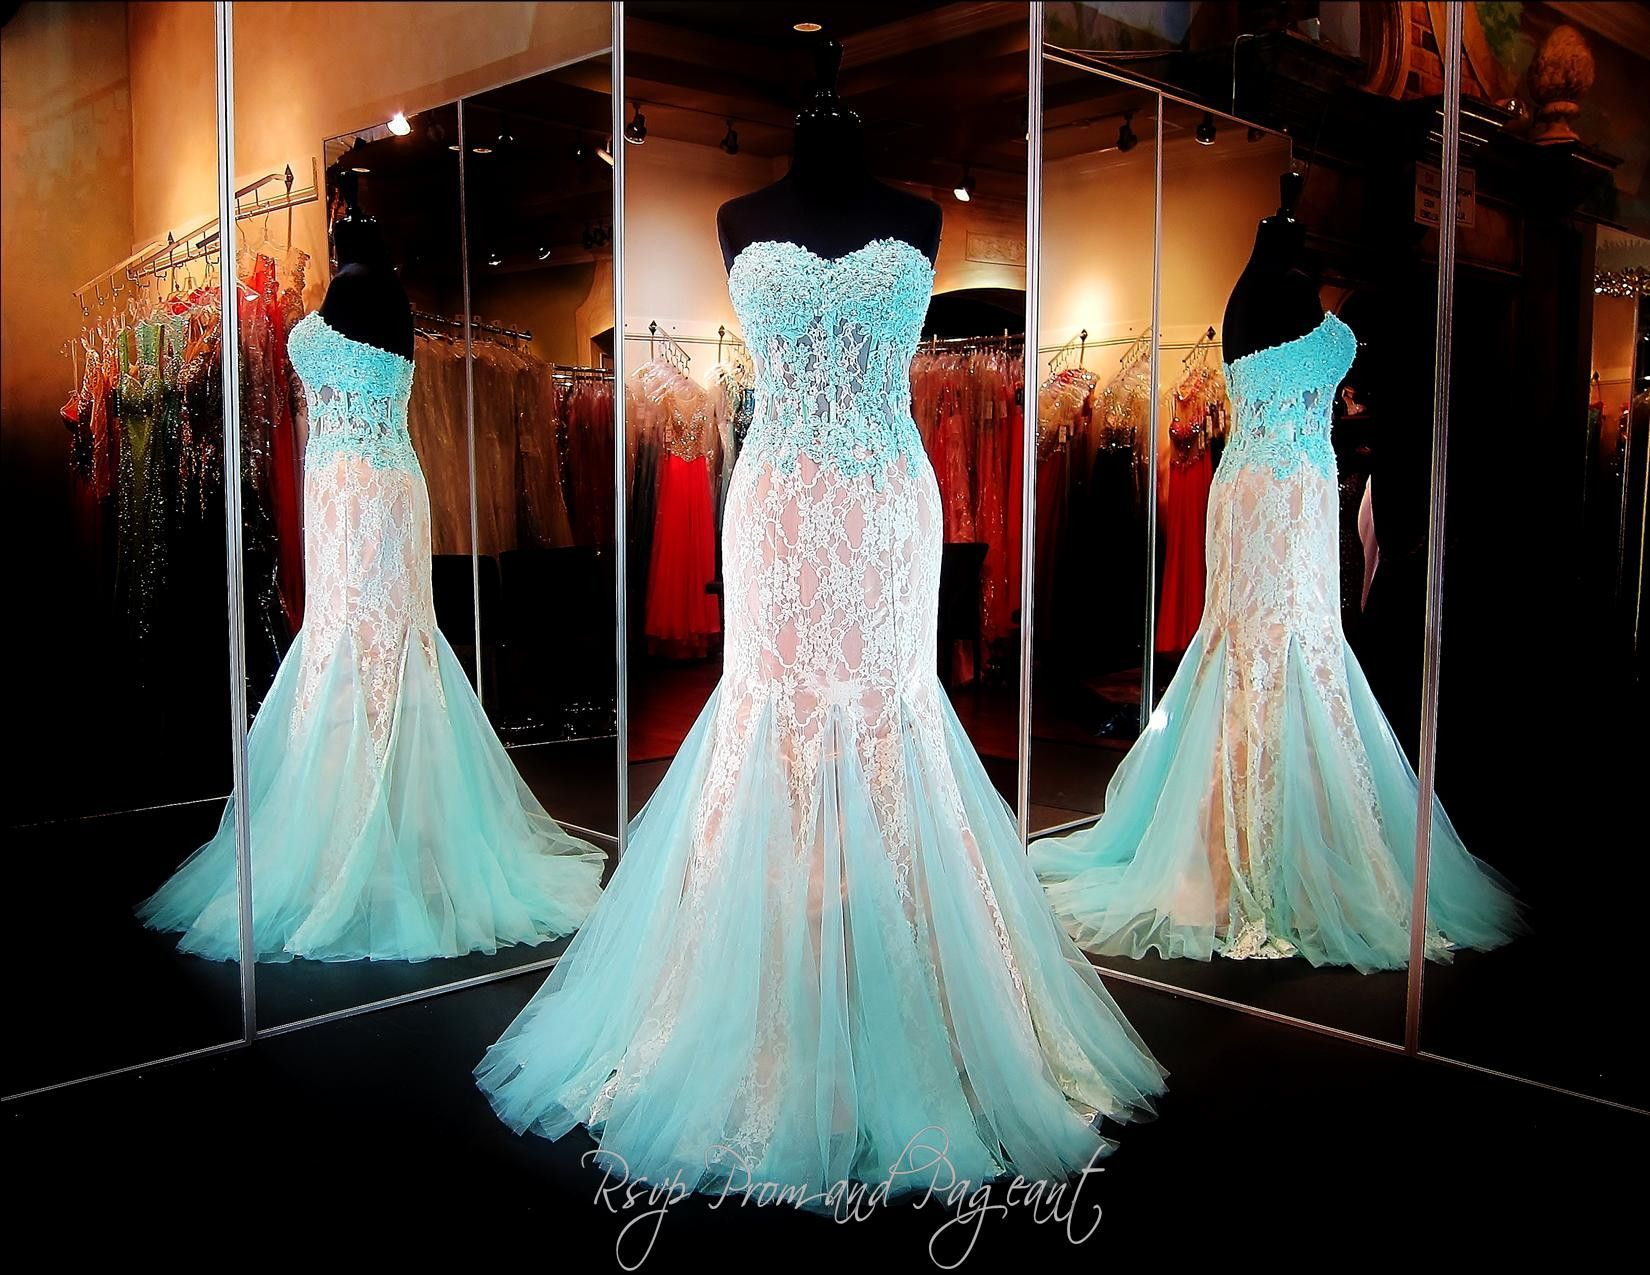 Unique Prom Dress Shops In Atlanta Ga Vignette - Wedding Dress Ideas ...